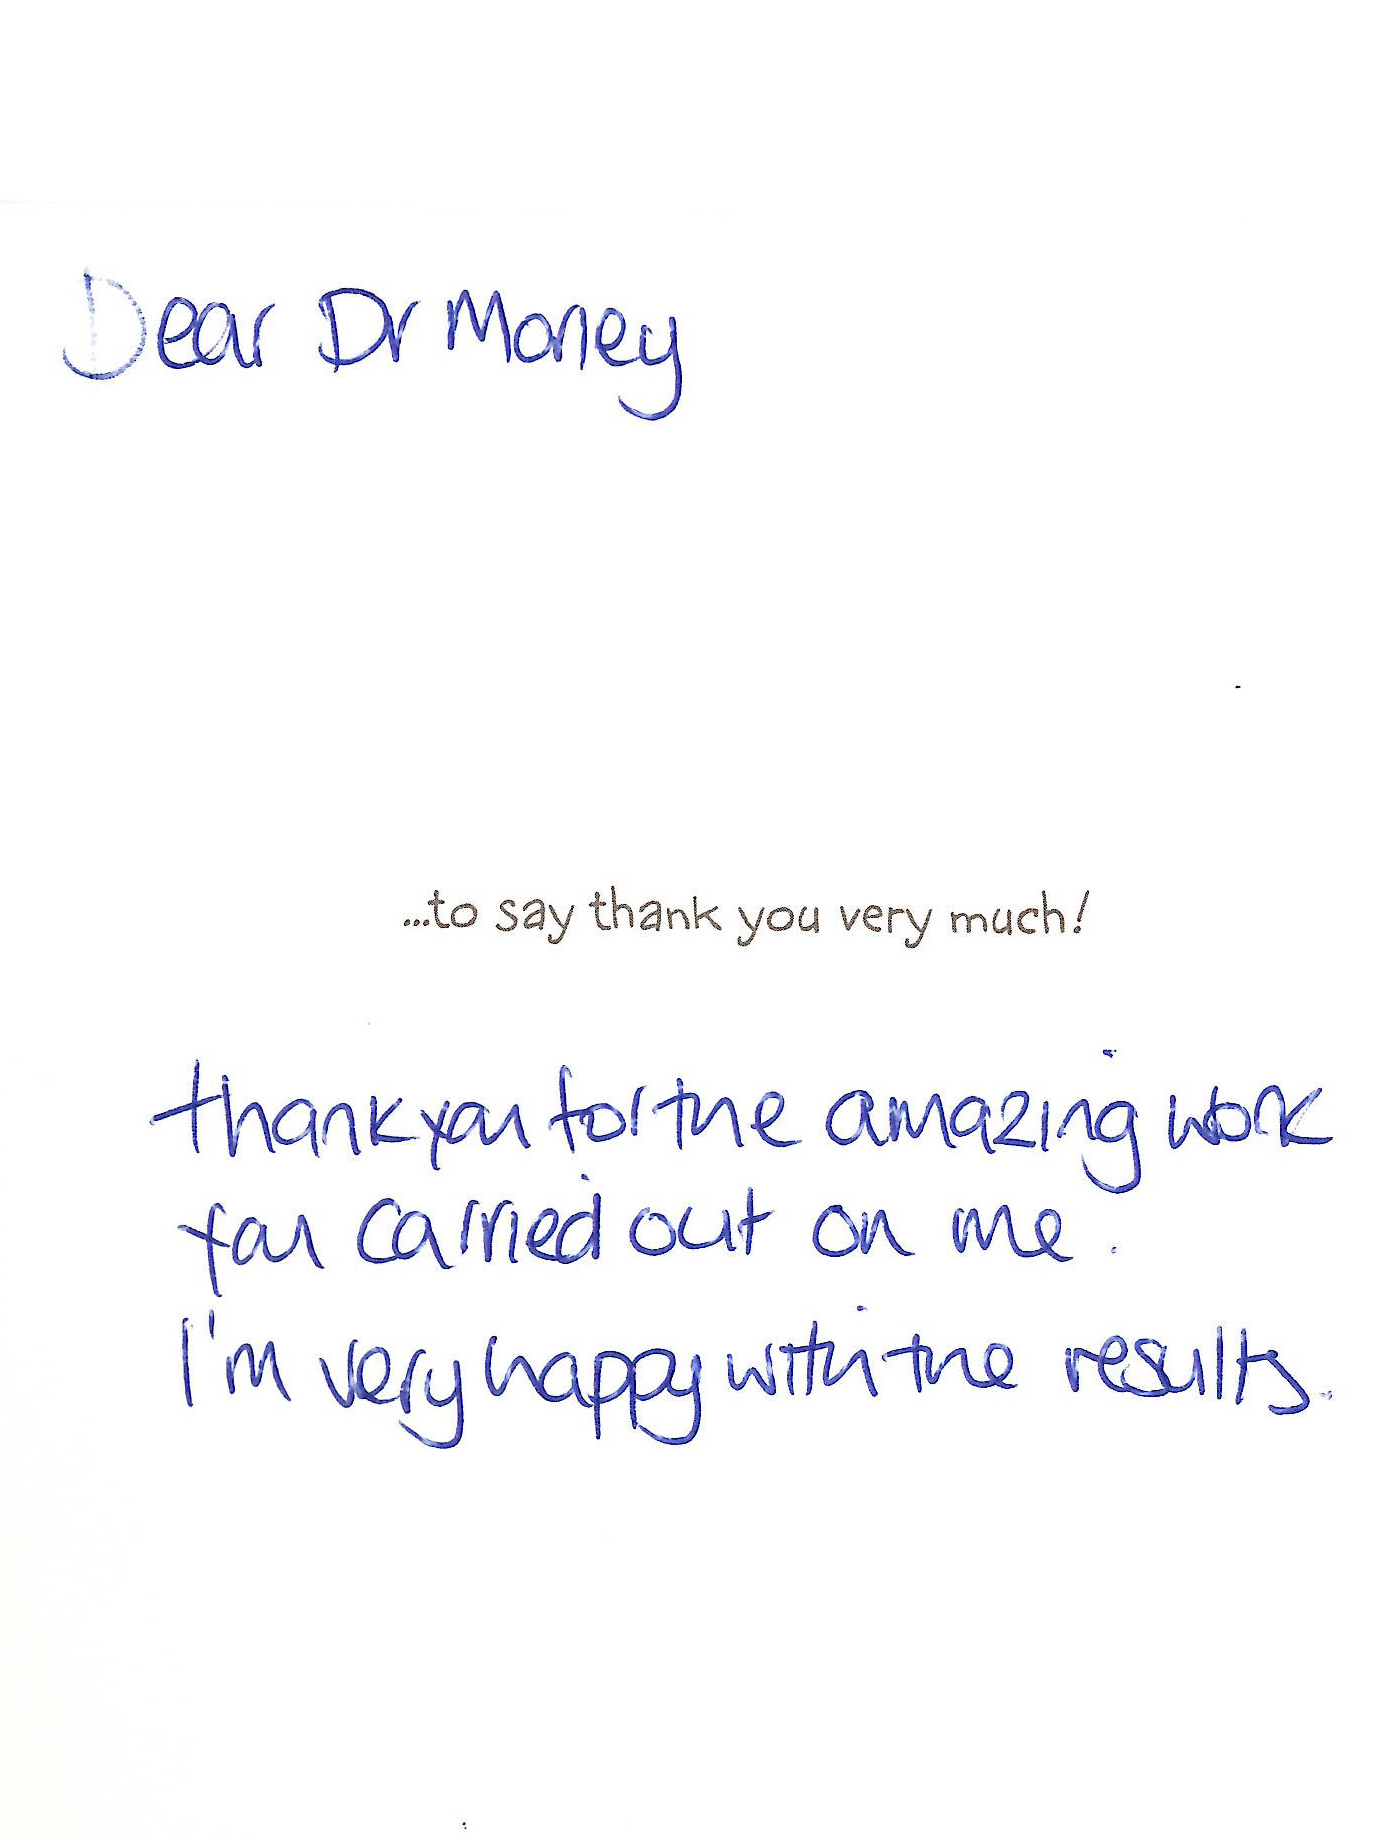 Dear Dr Morley Thank you for the amazing work you carried out on me. I'm very happy with the results.